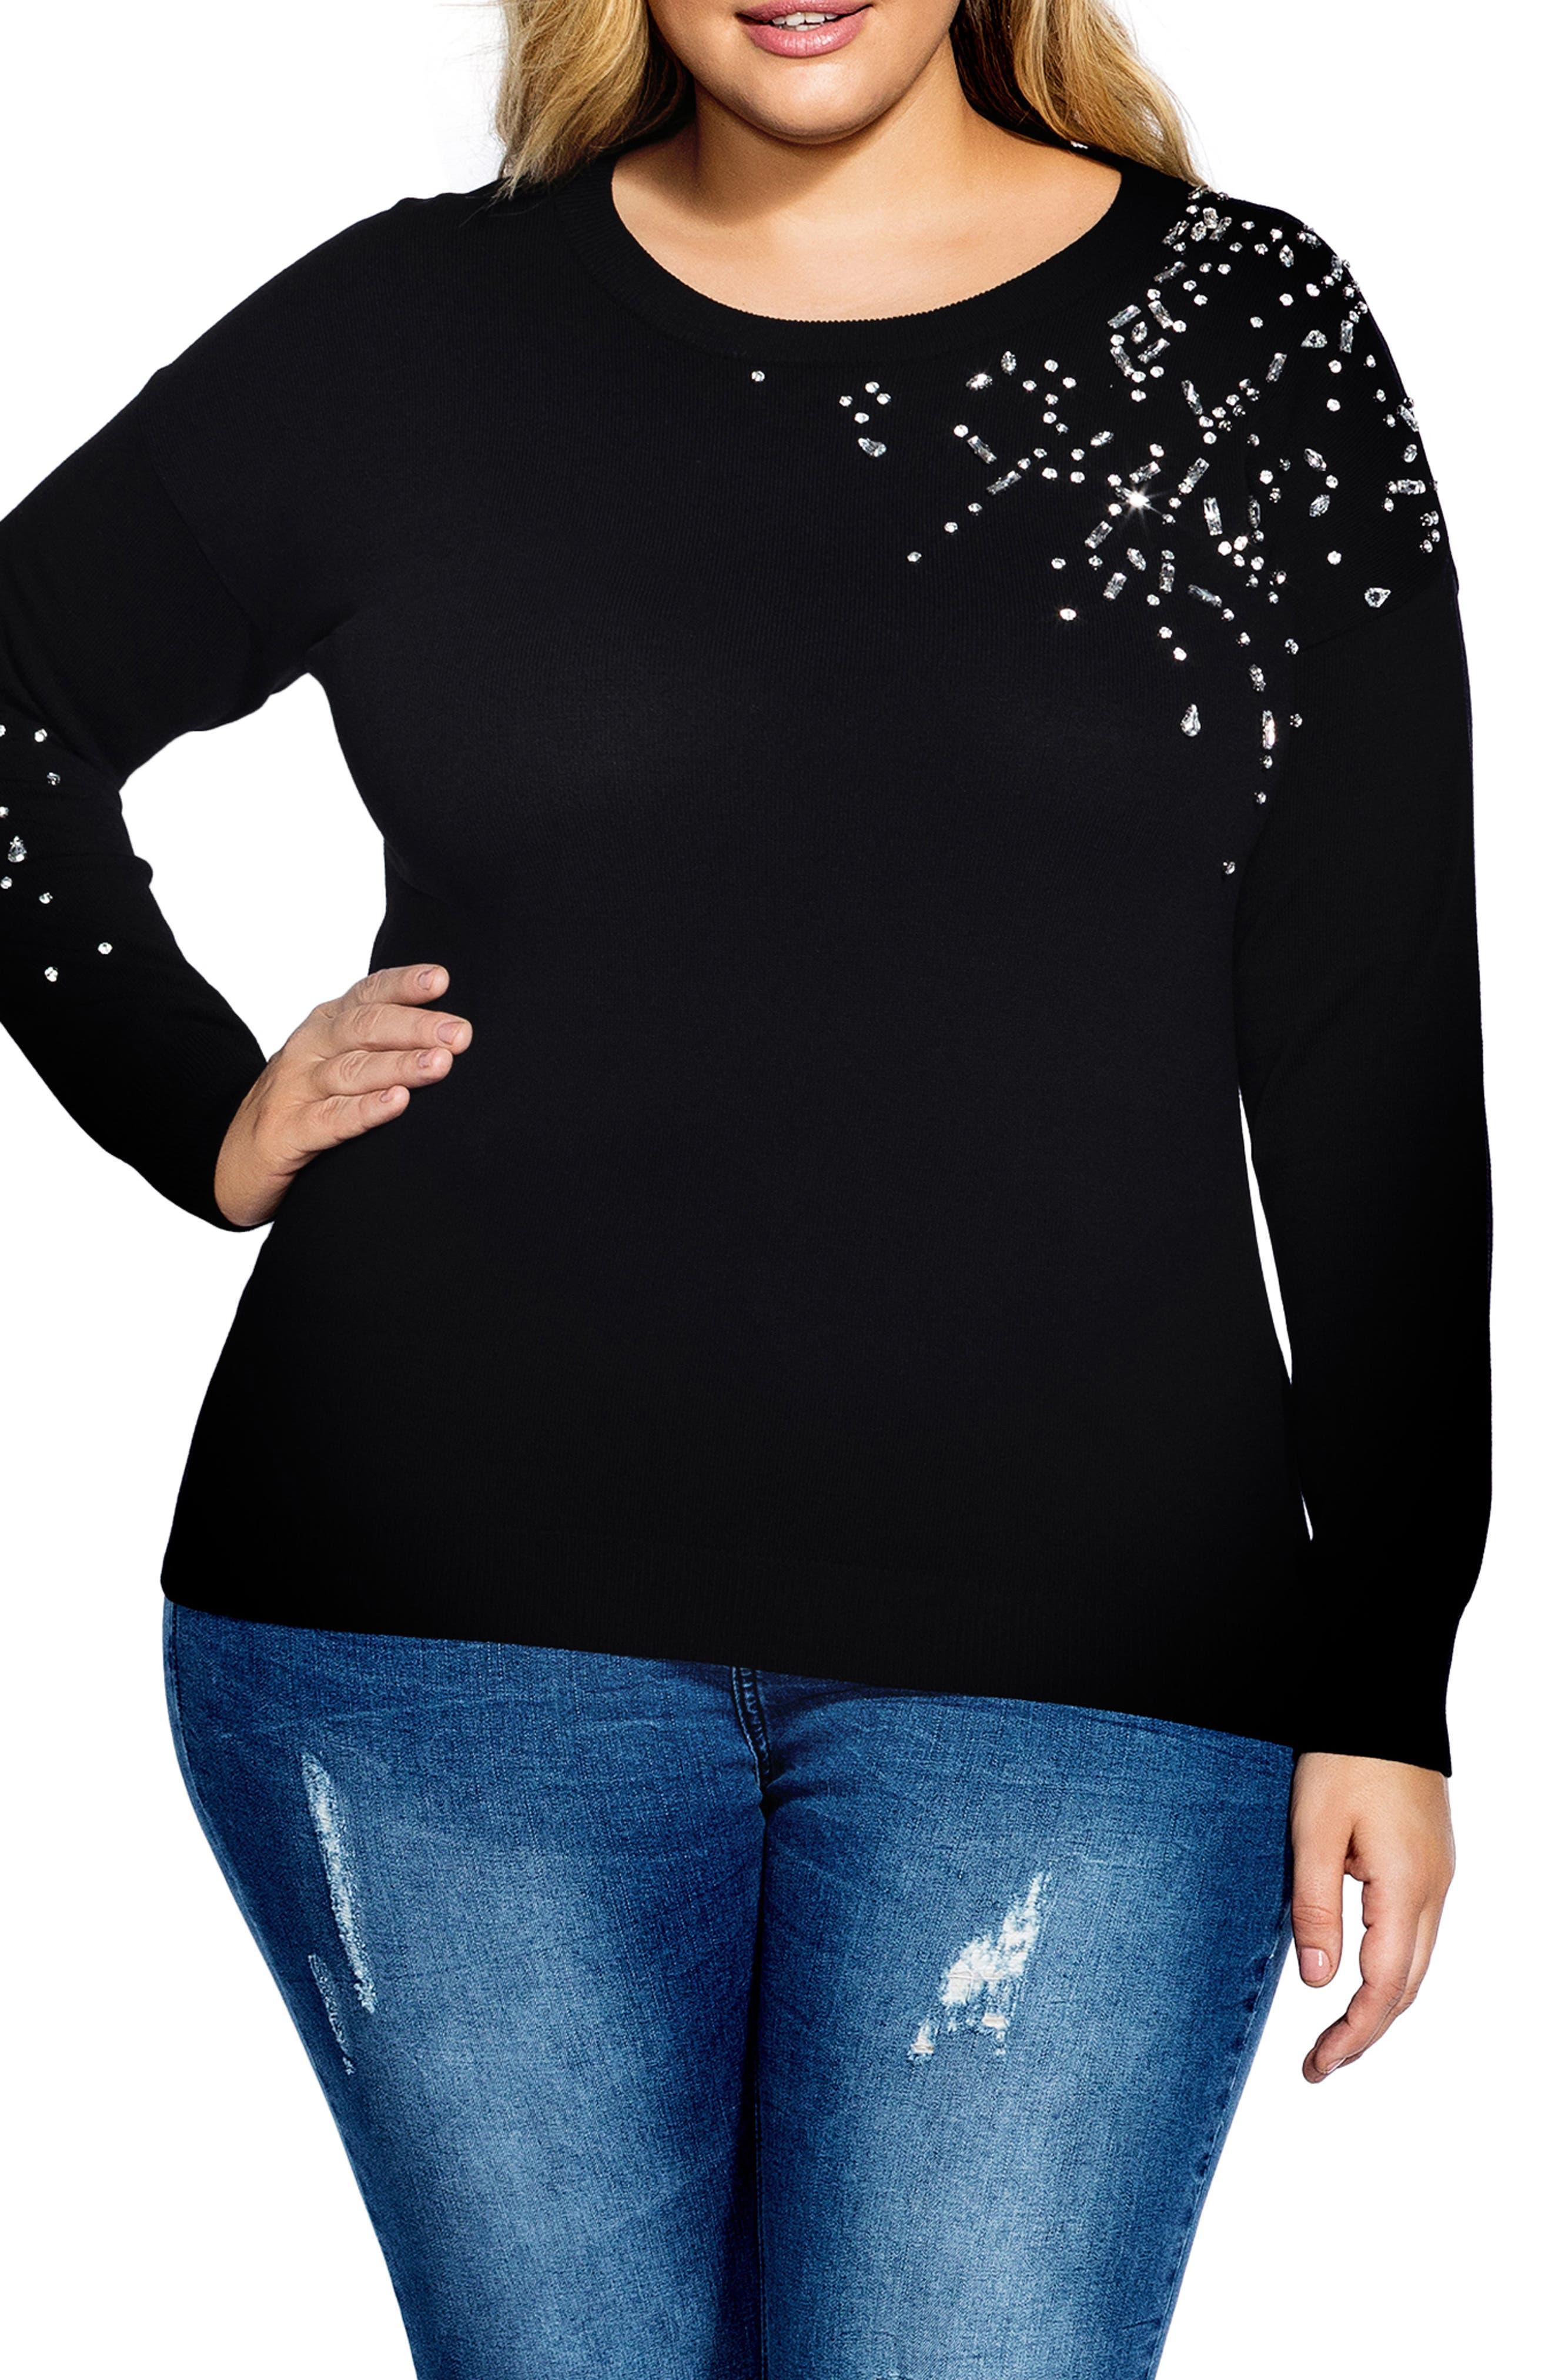 CITY CHIC Embellished Sweater, Main, color, BLACK